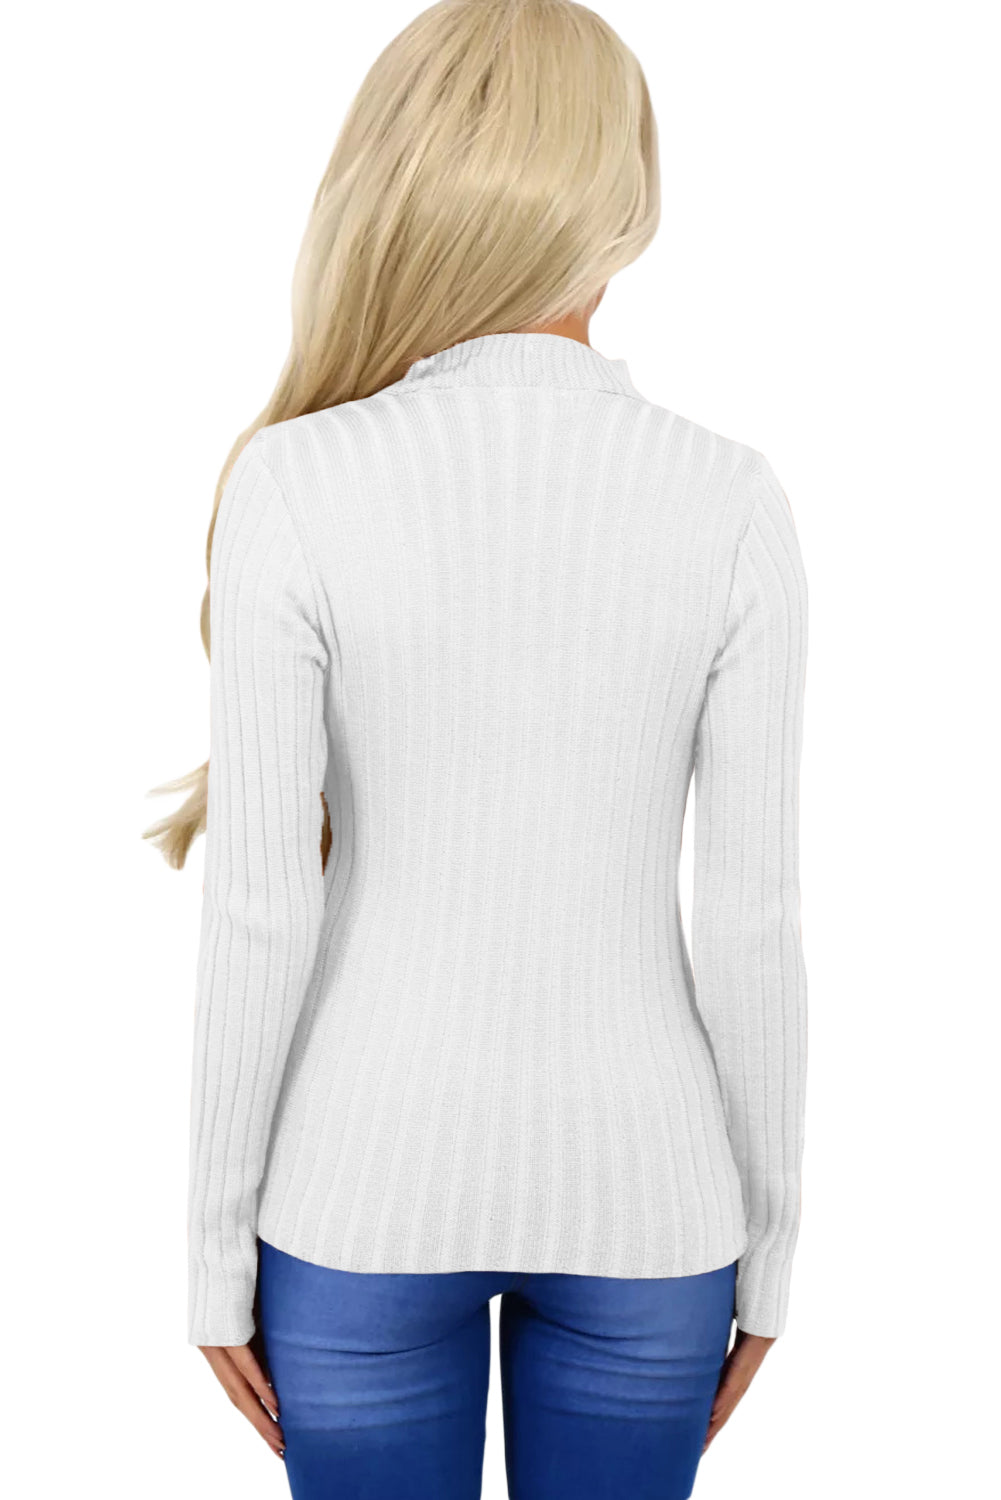 Her Fashion White Ribbed Choker Neck Women Sweater